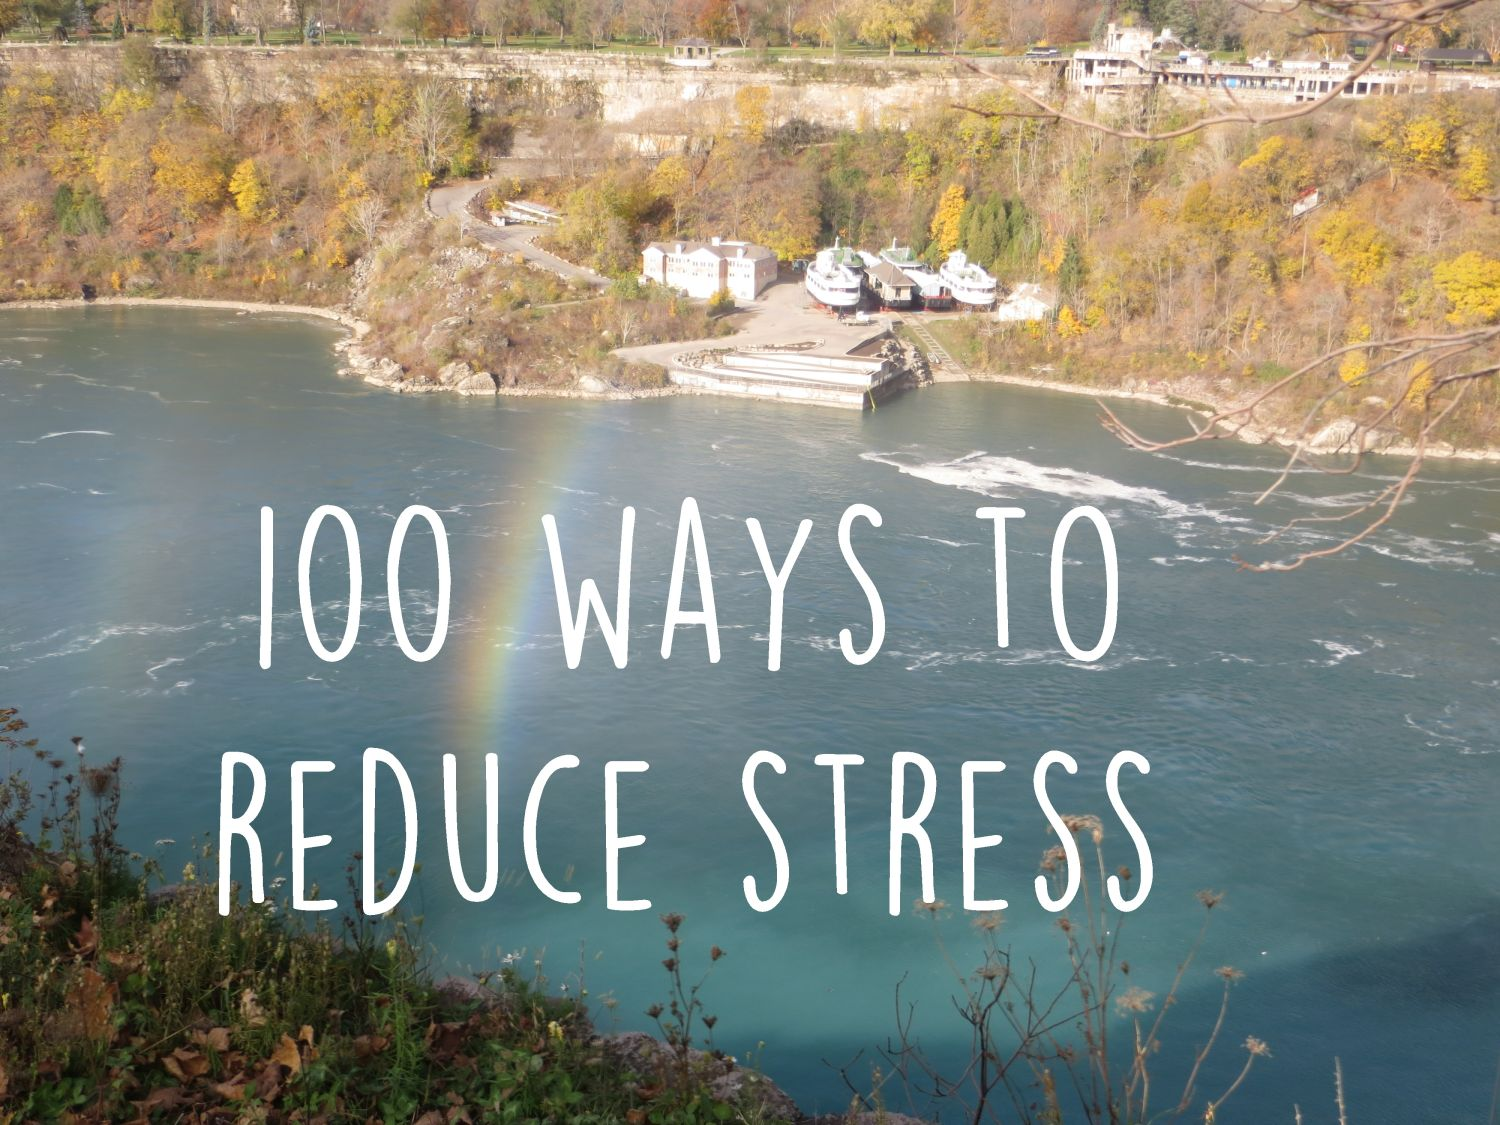 100 Ways To Reduce Stress by Uncustomary Art